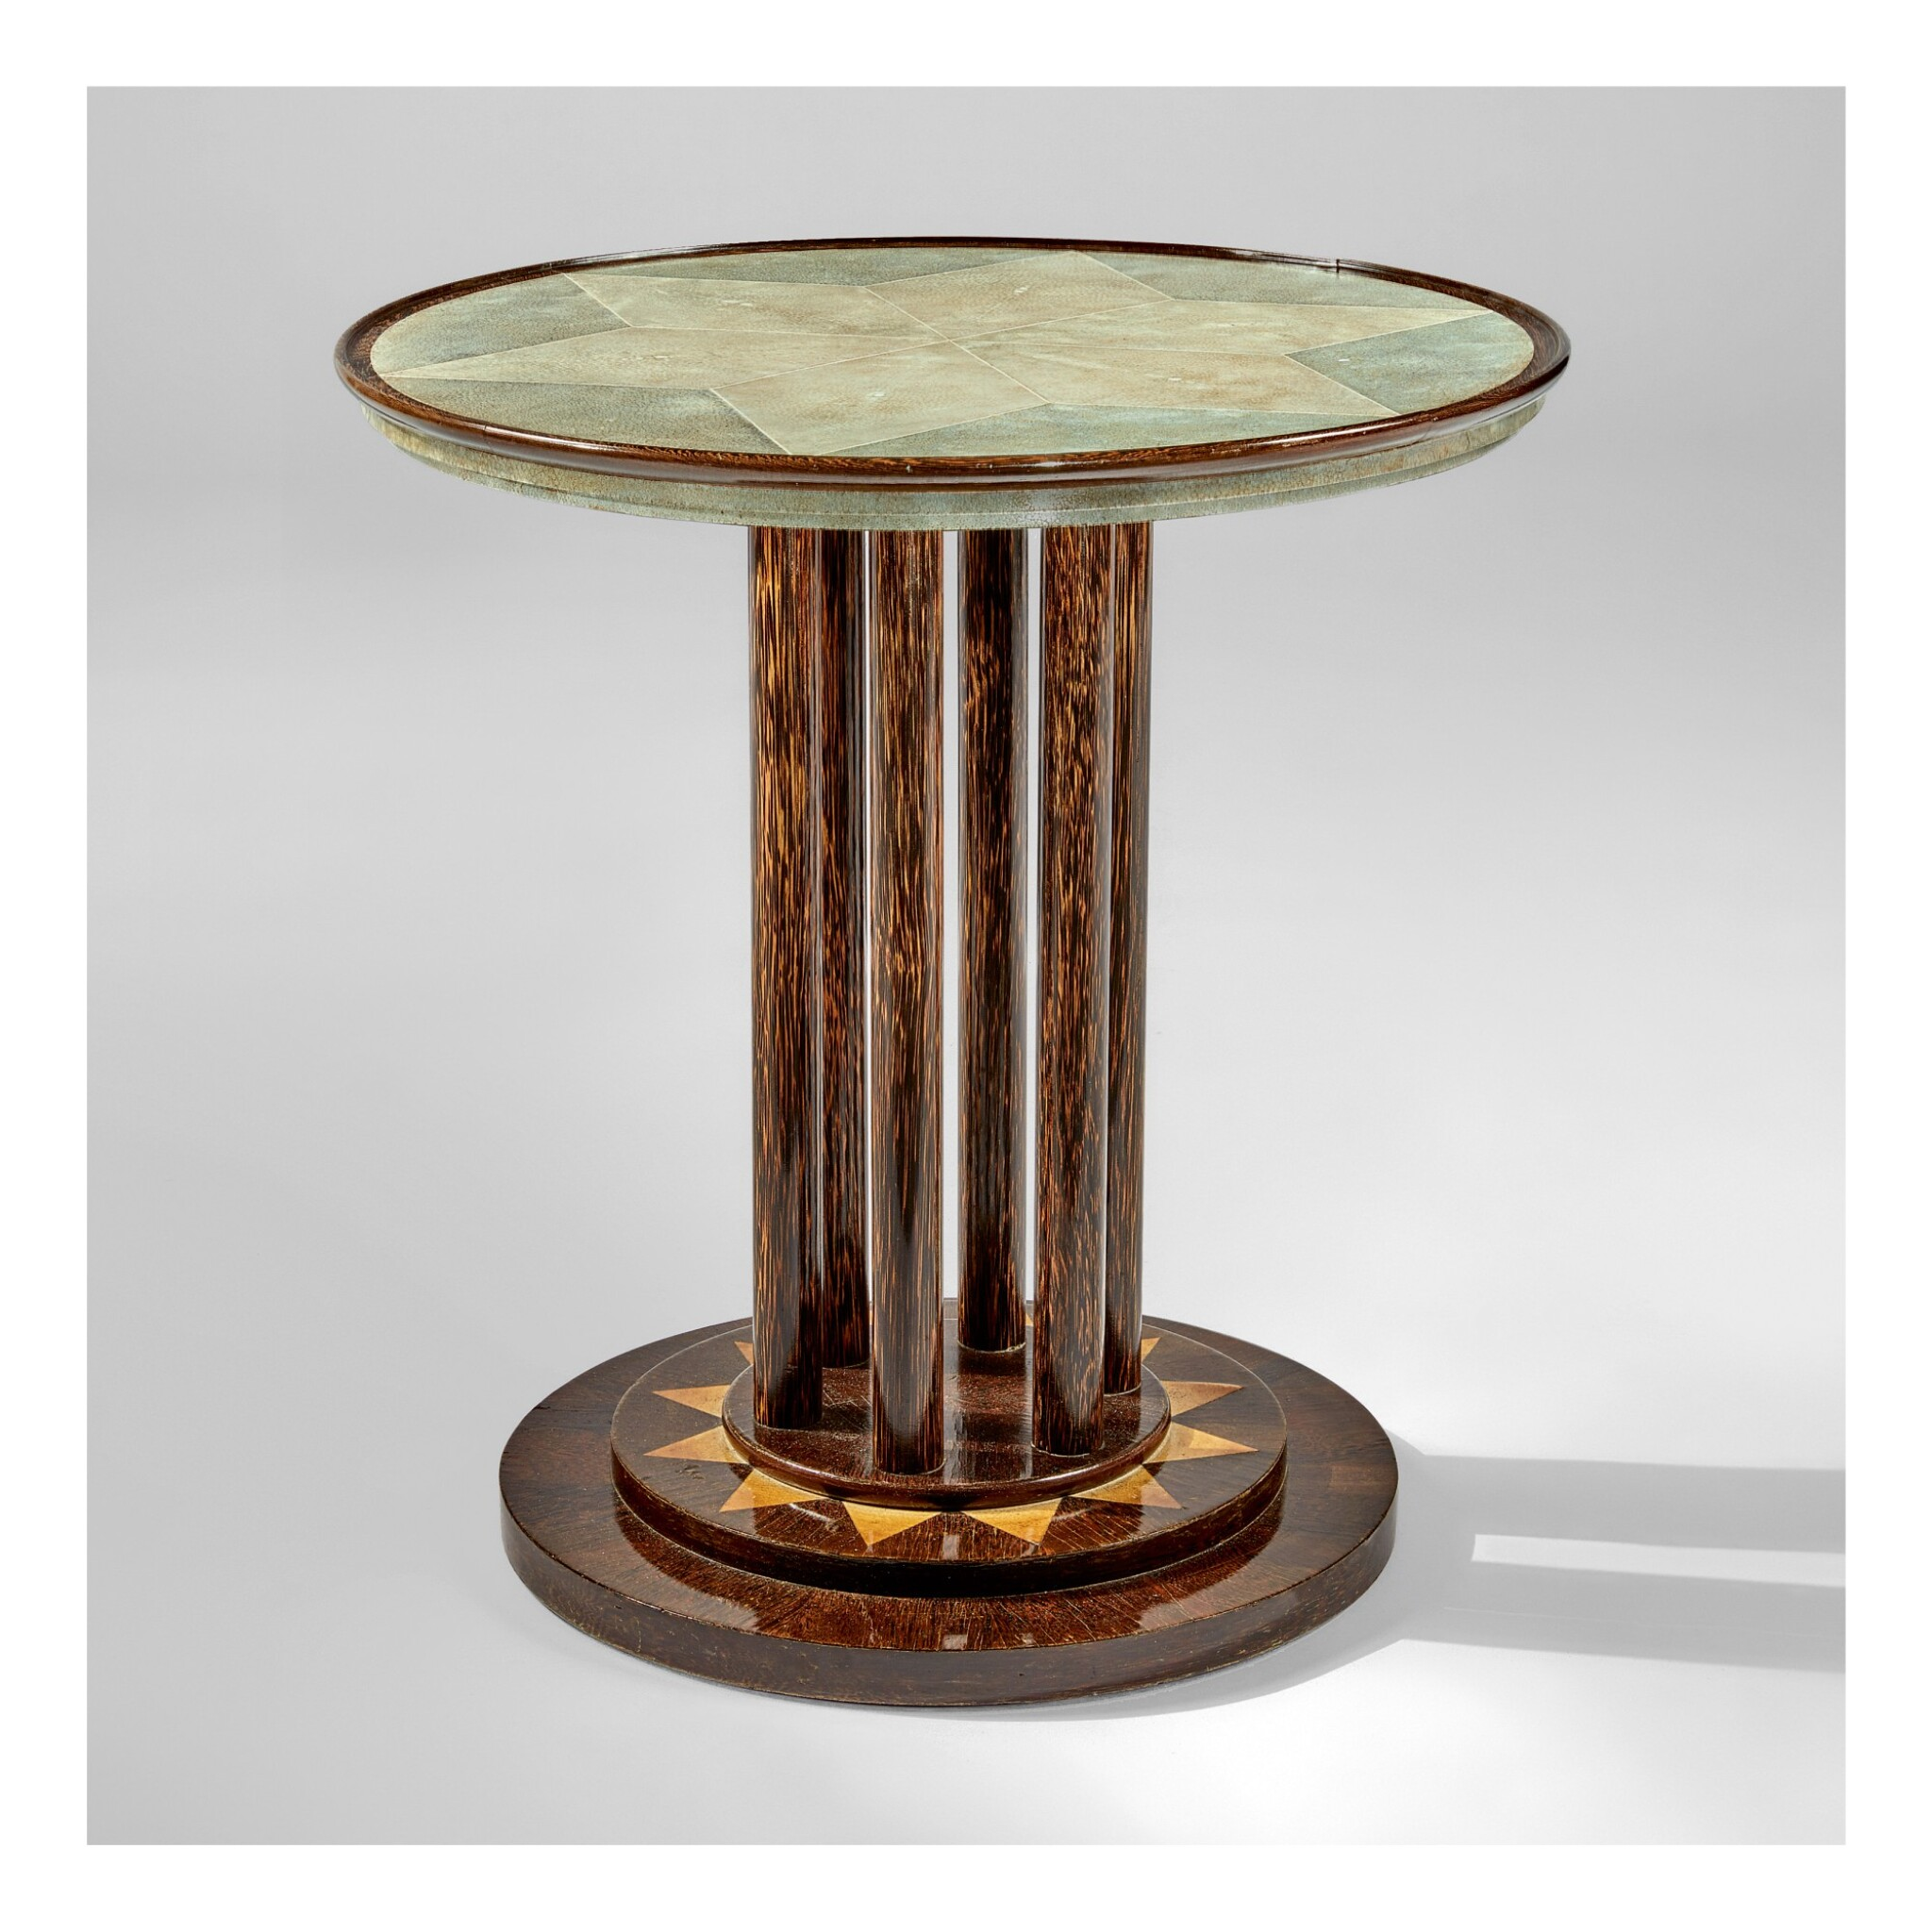 View 1 of Lot 26. Side Table.